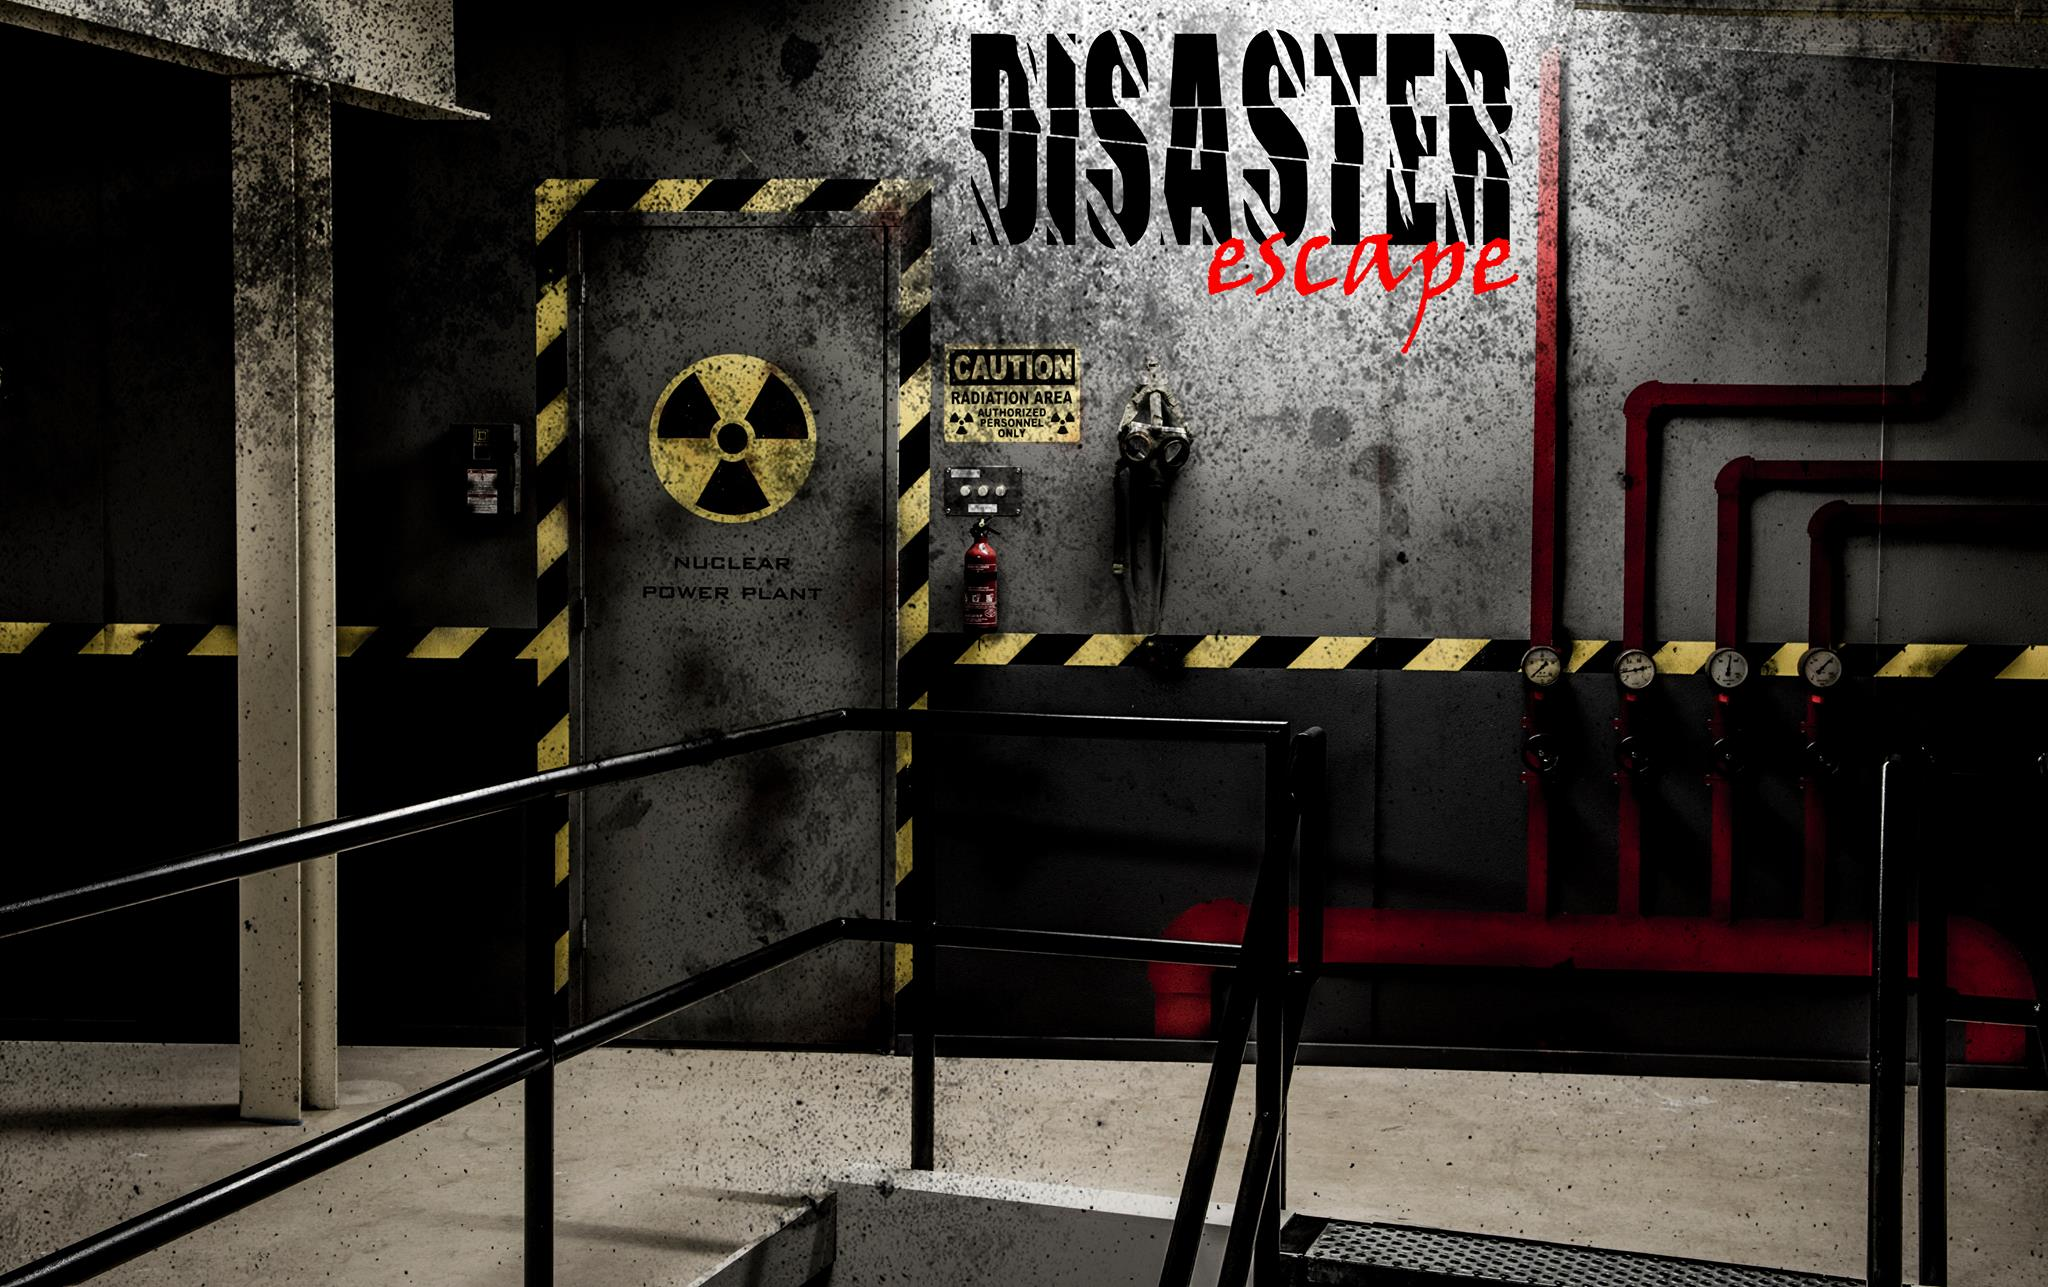 nuclear power plant escape room